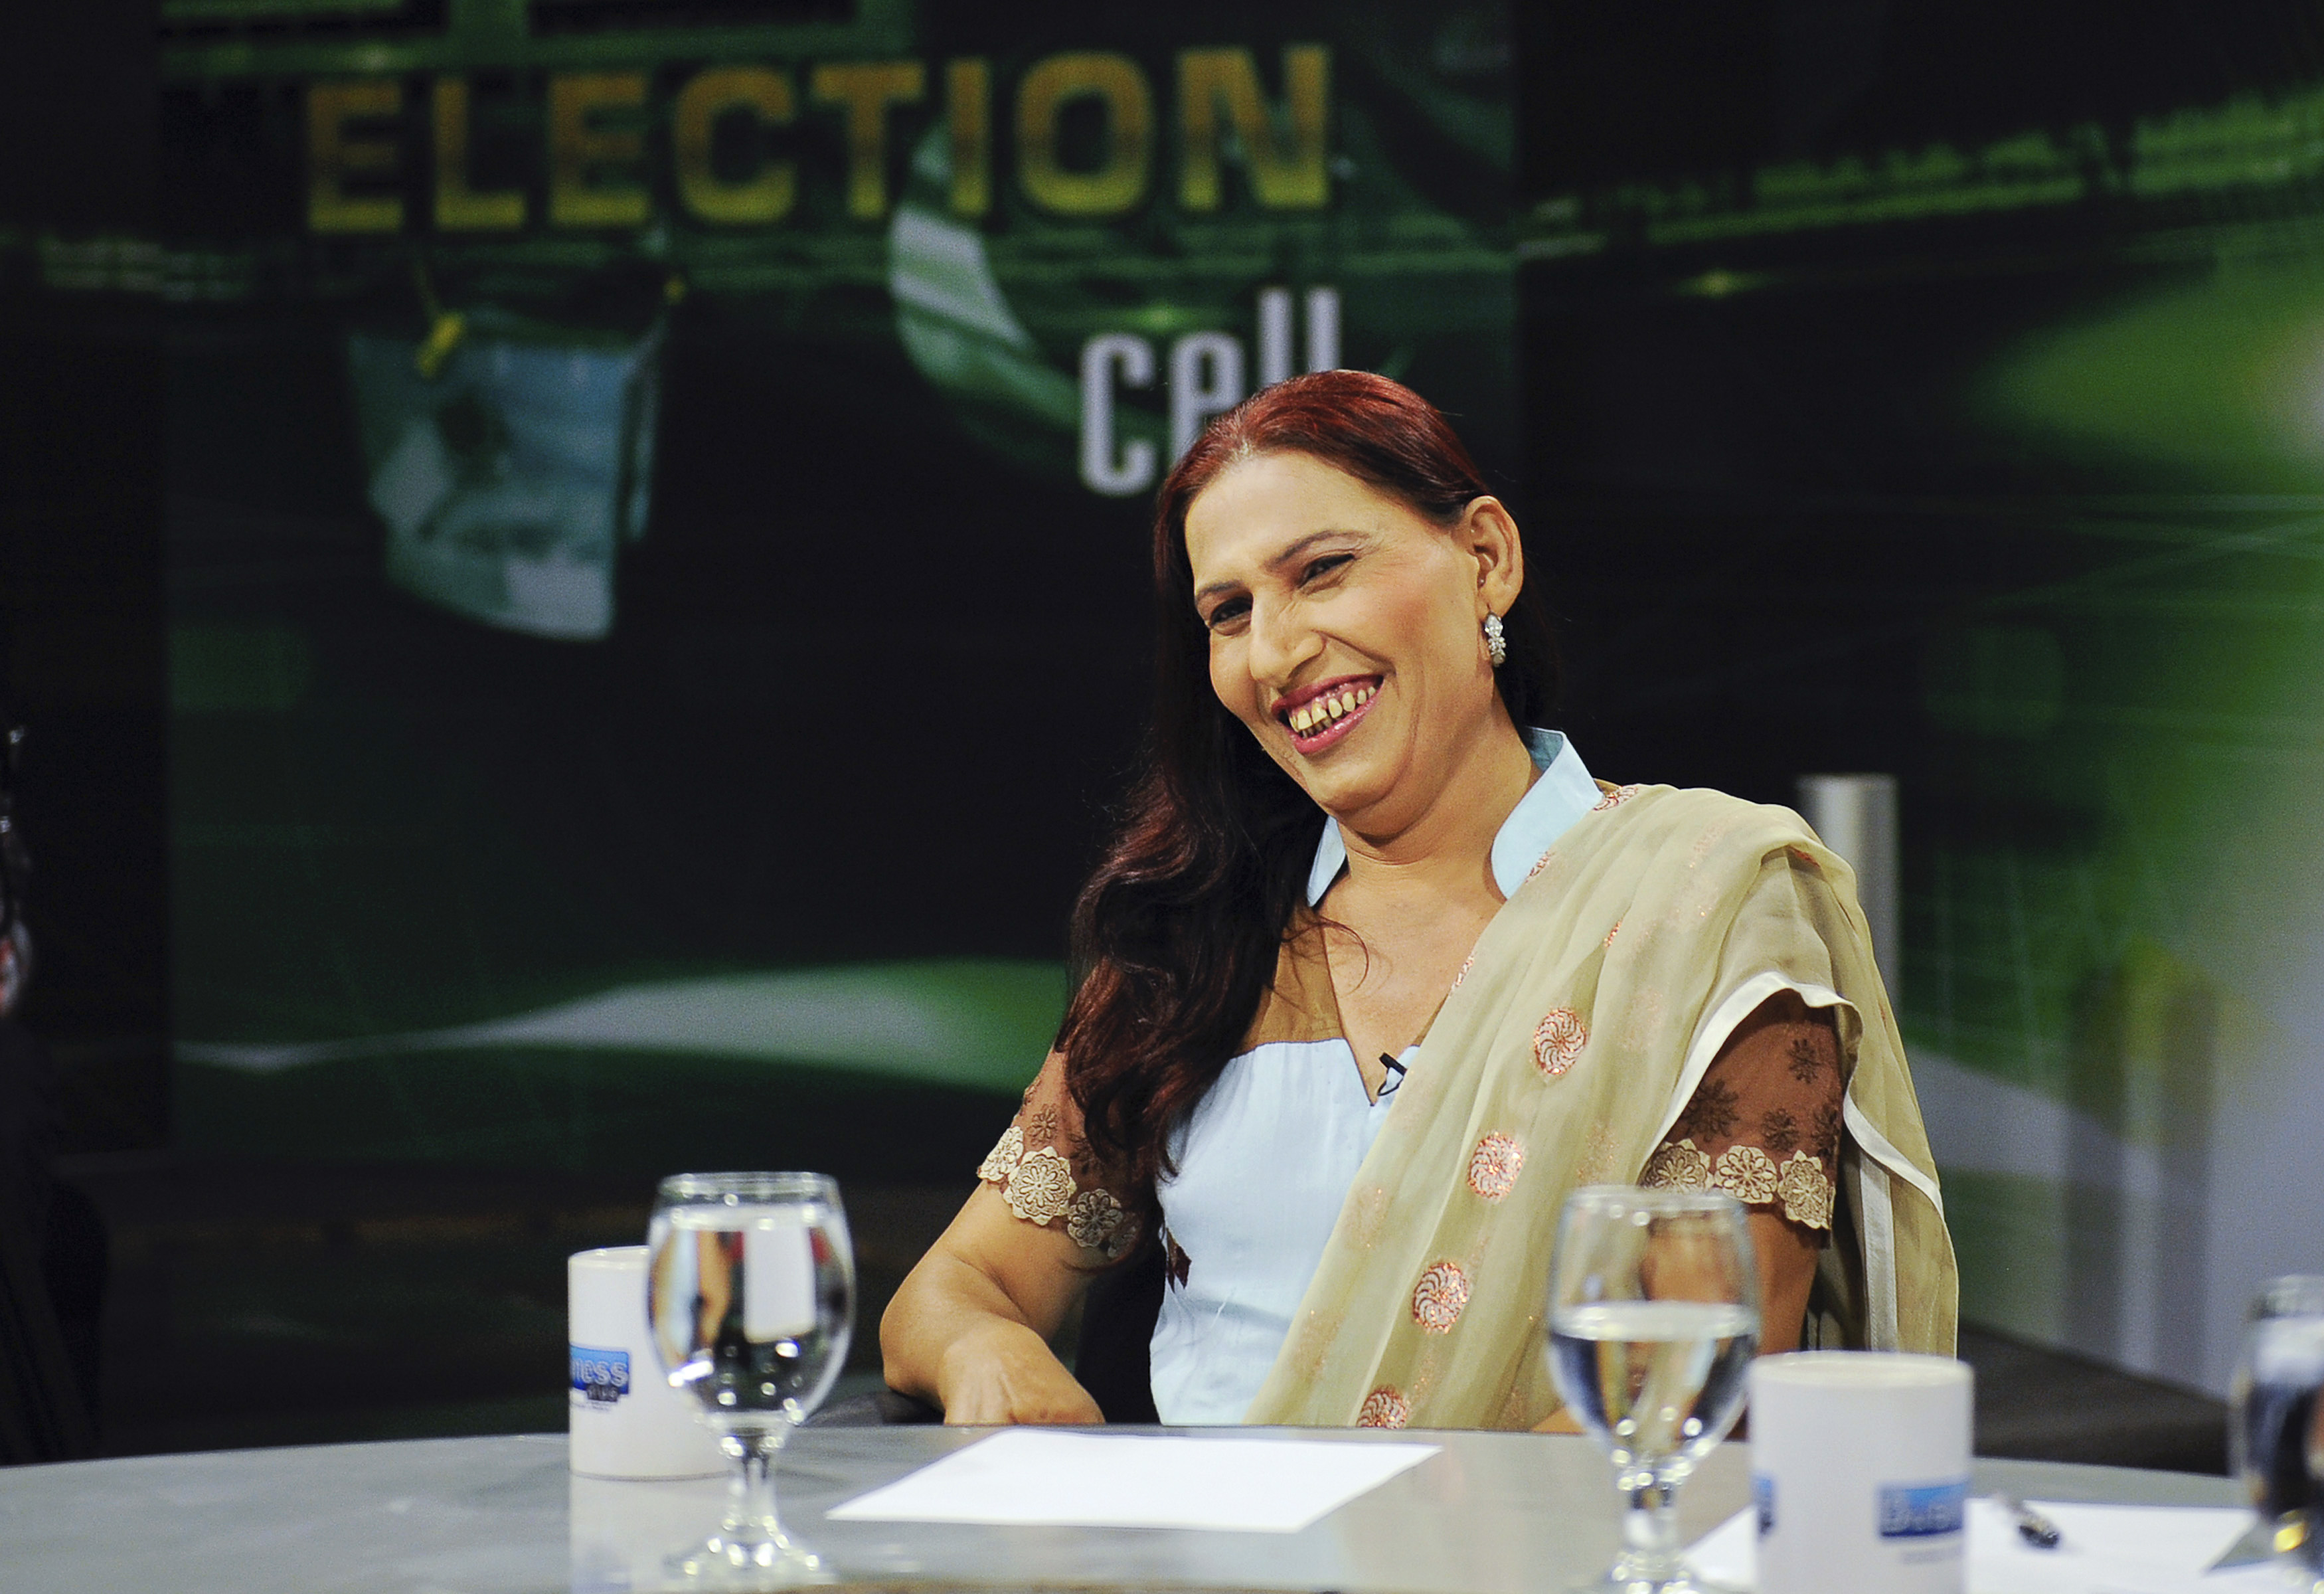 Bindiya Rana, a transgender independent candidate for the elections, during a pre-election analysis program in Karachi April 23, 2013.